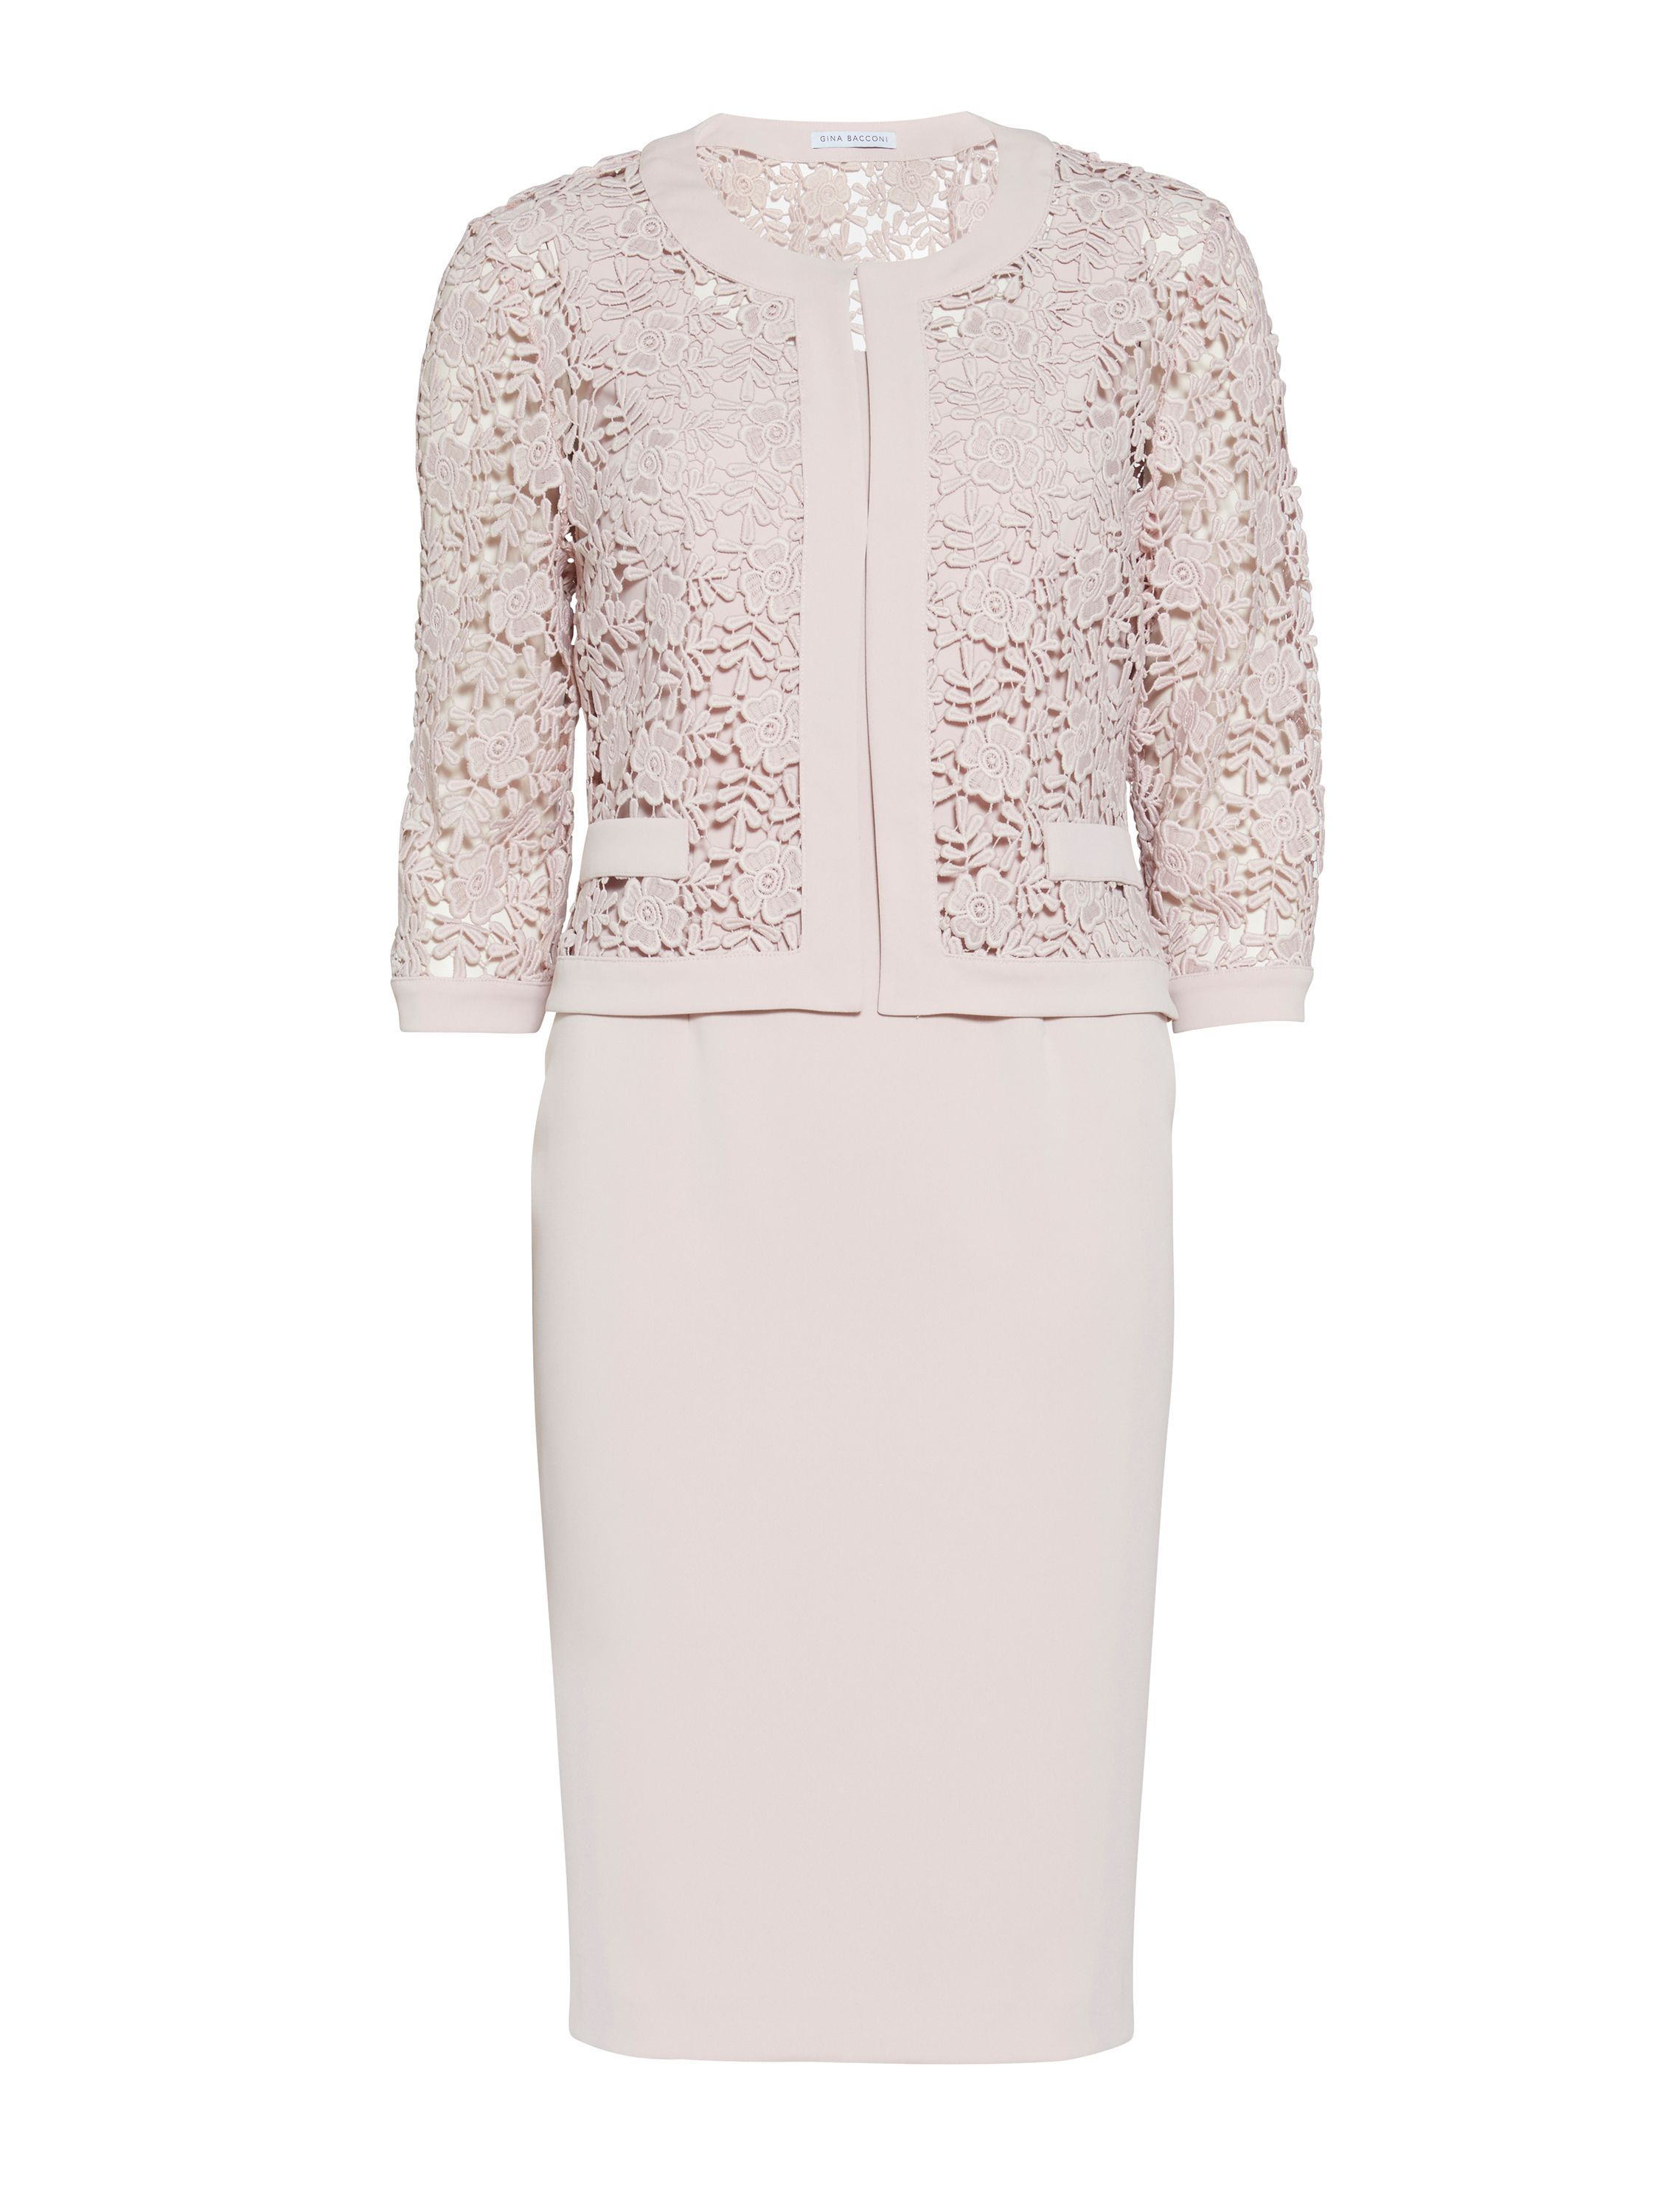 Gina Bacconi Crepe dress and guipure jacket, Pastel Pink